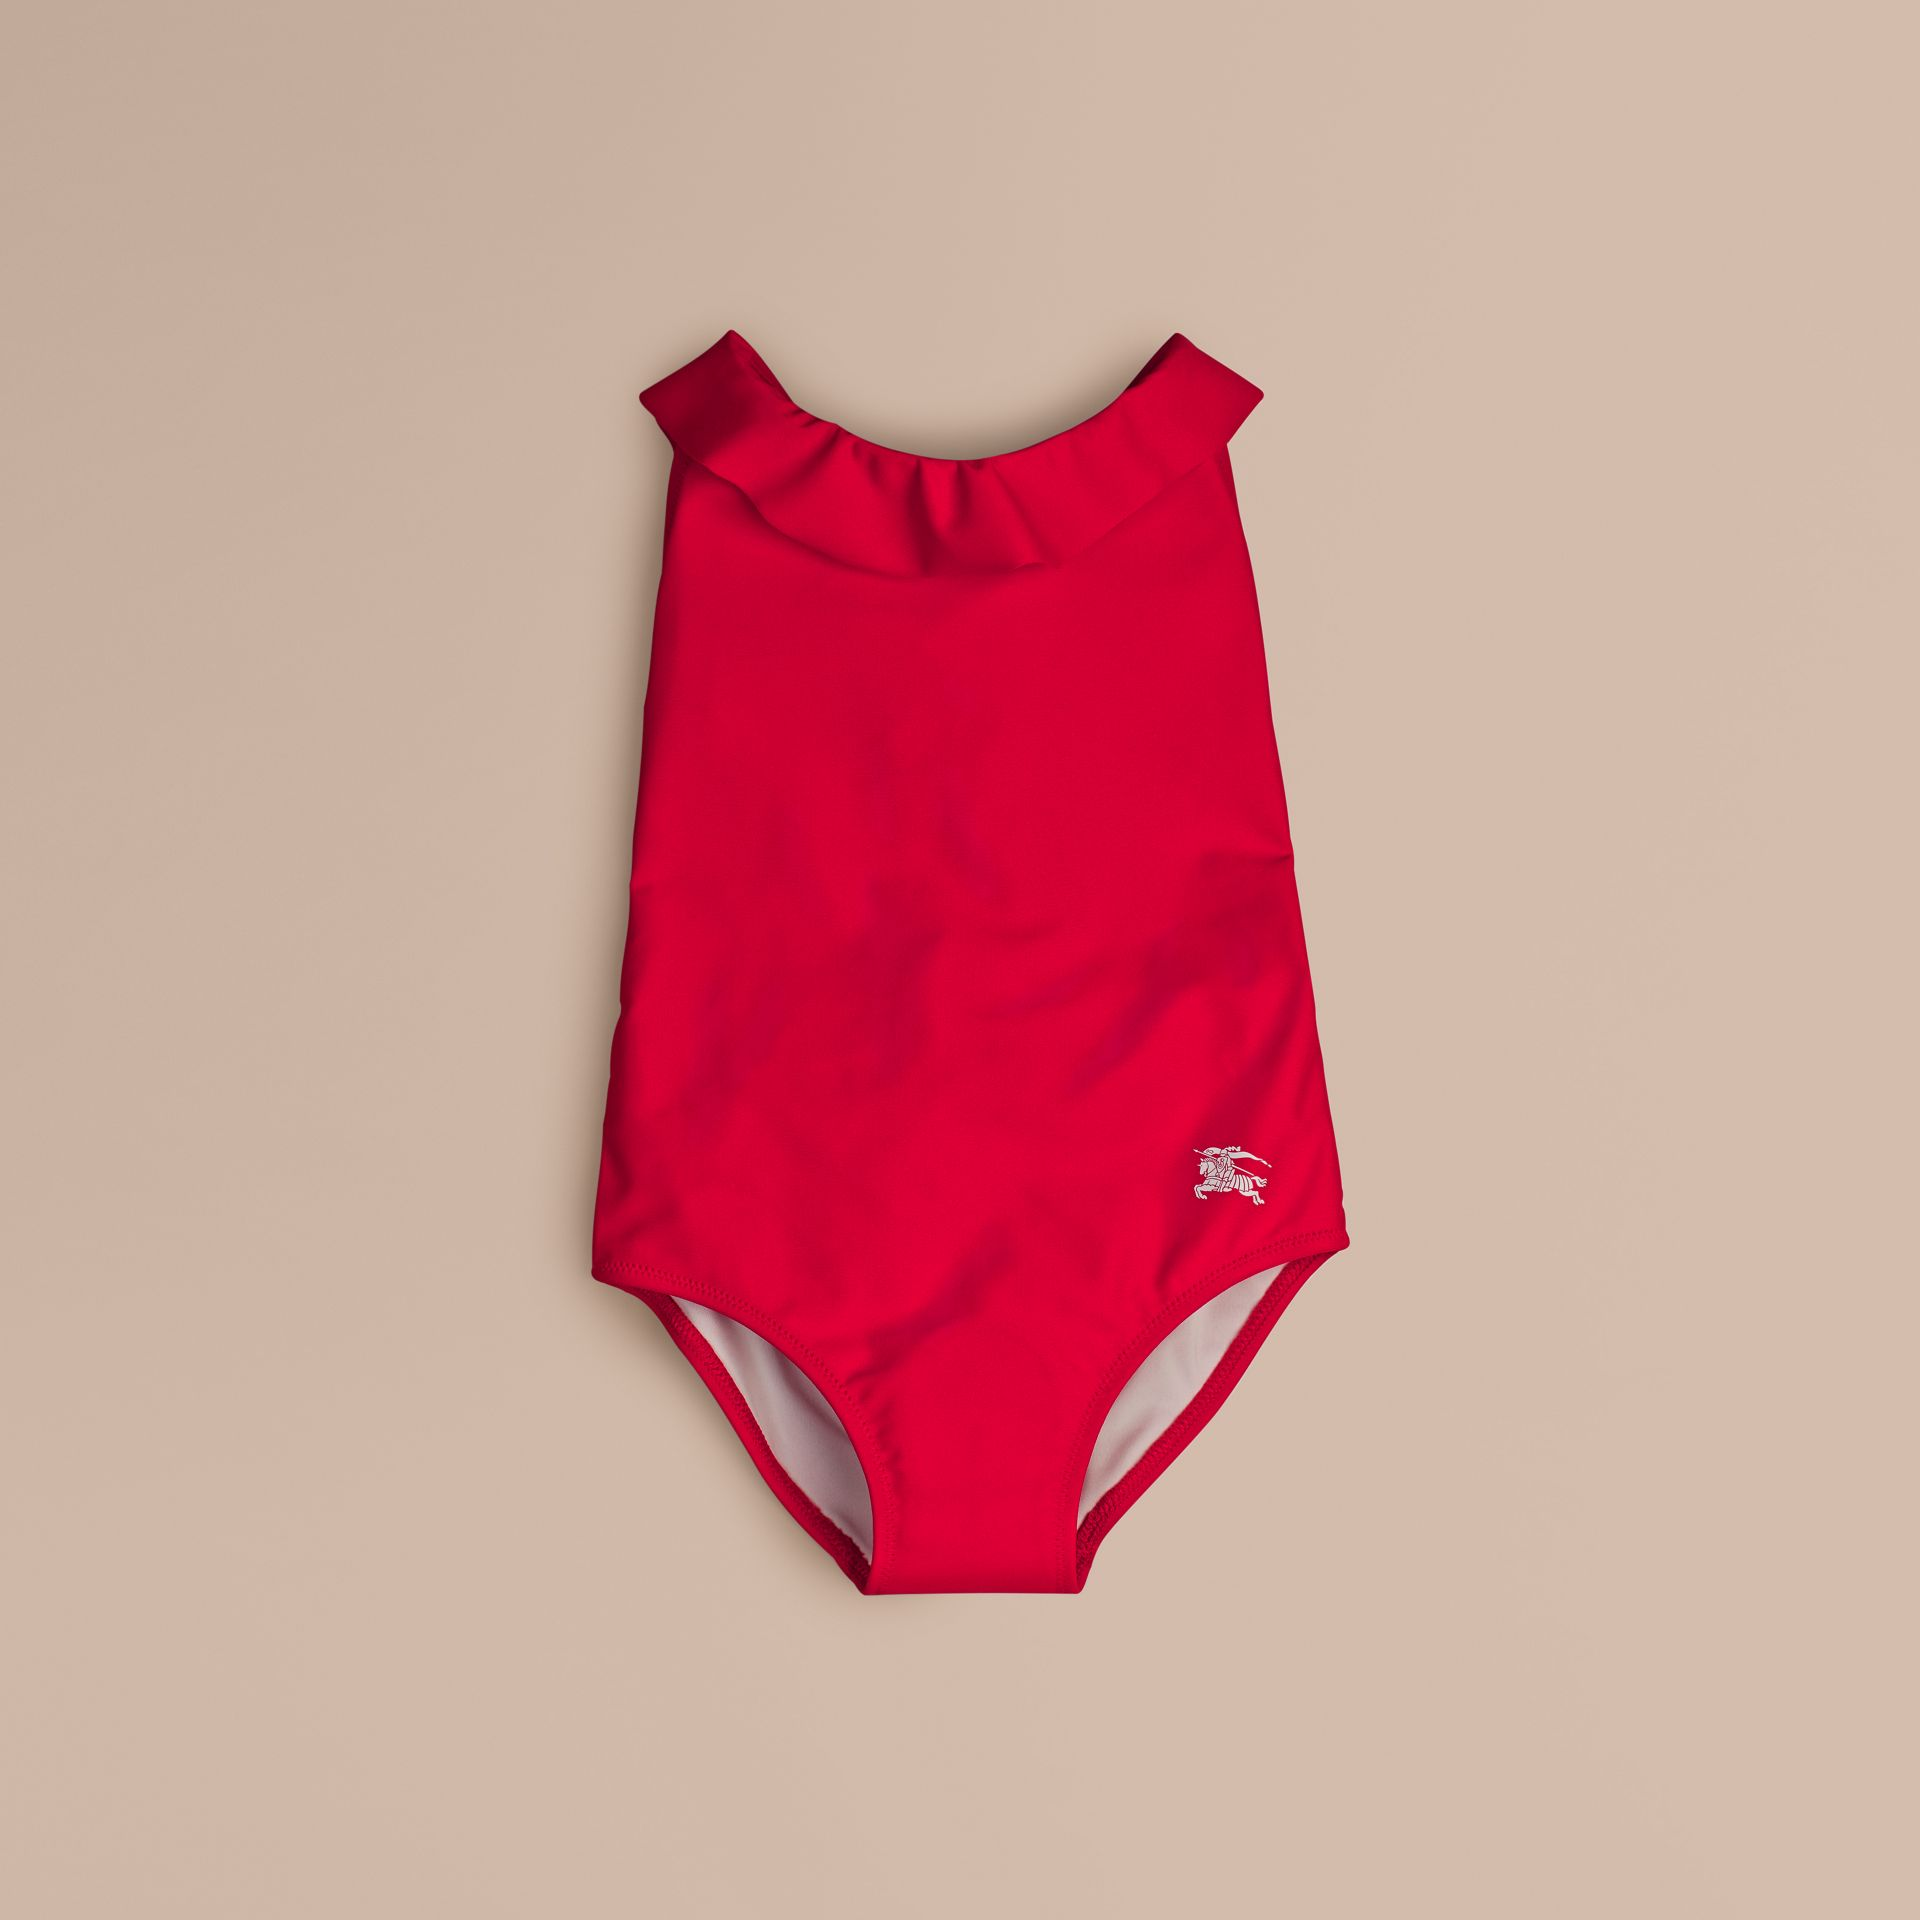 Ruffle Detail One-piece Swimsuit in Poppy Red - Girl | Burberry - gallery image 1